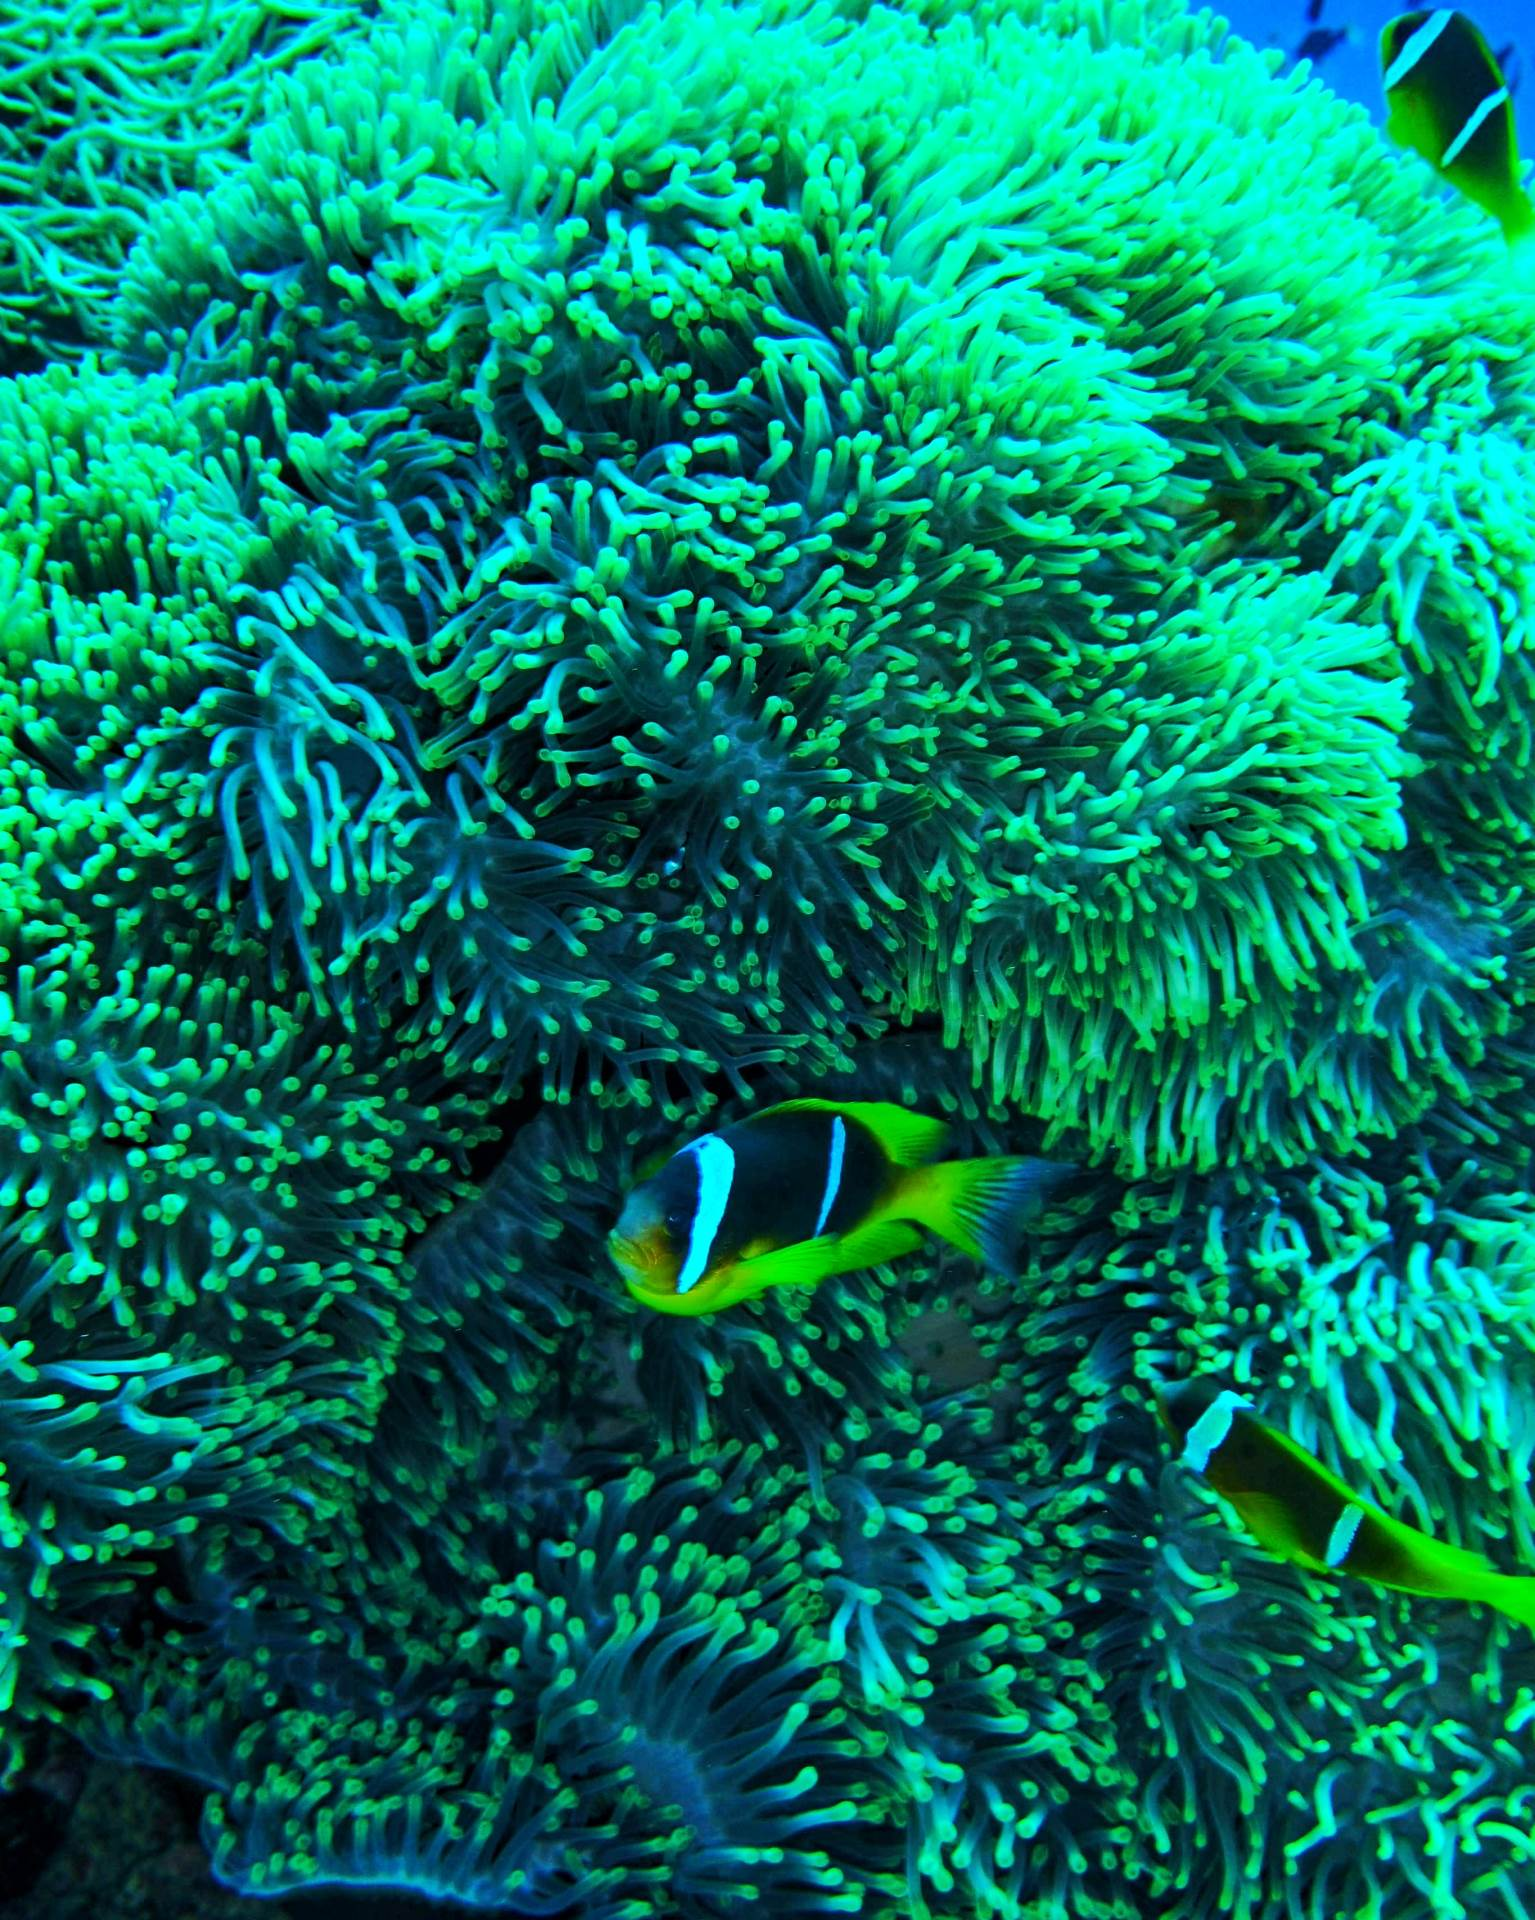 Evening dive. Clownfish and corals